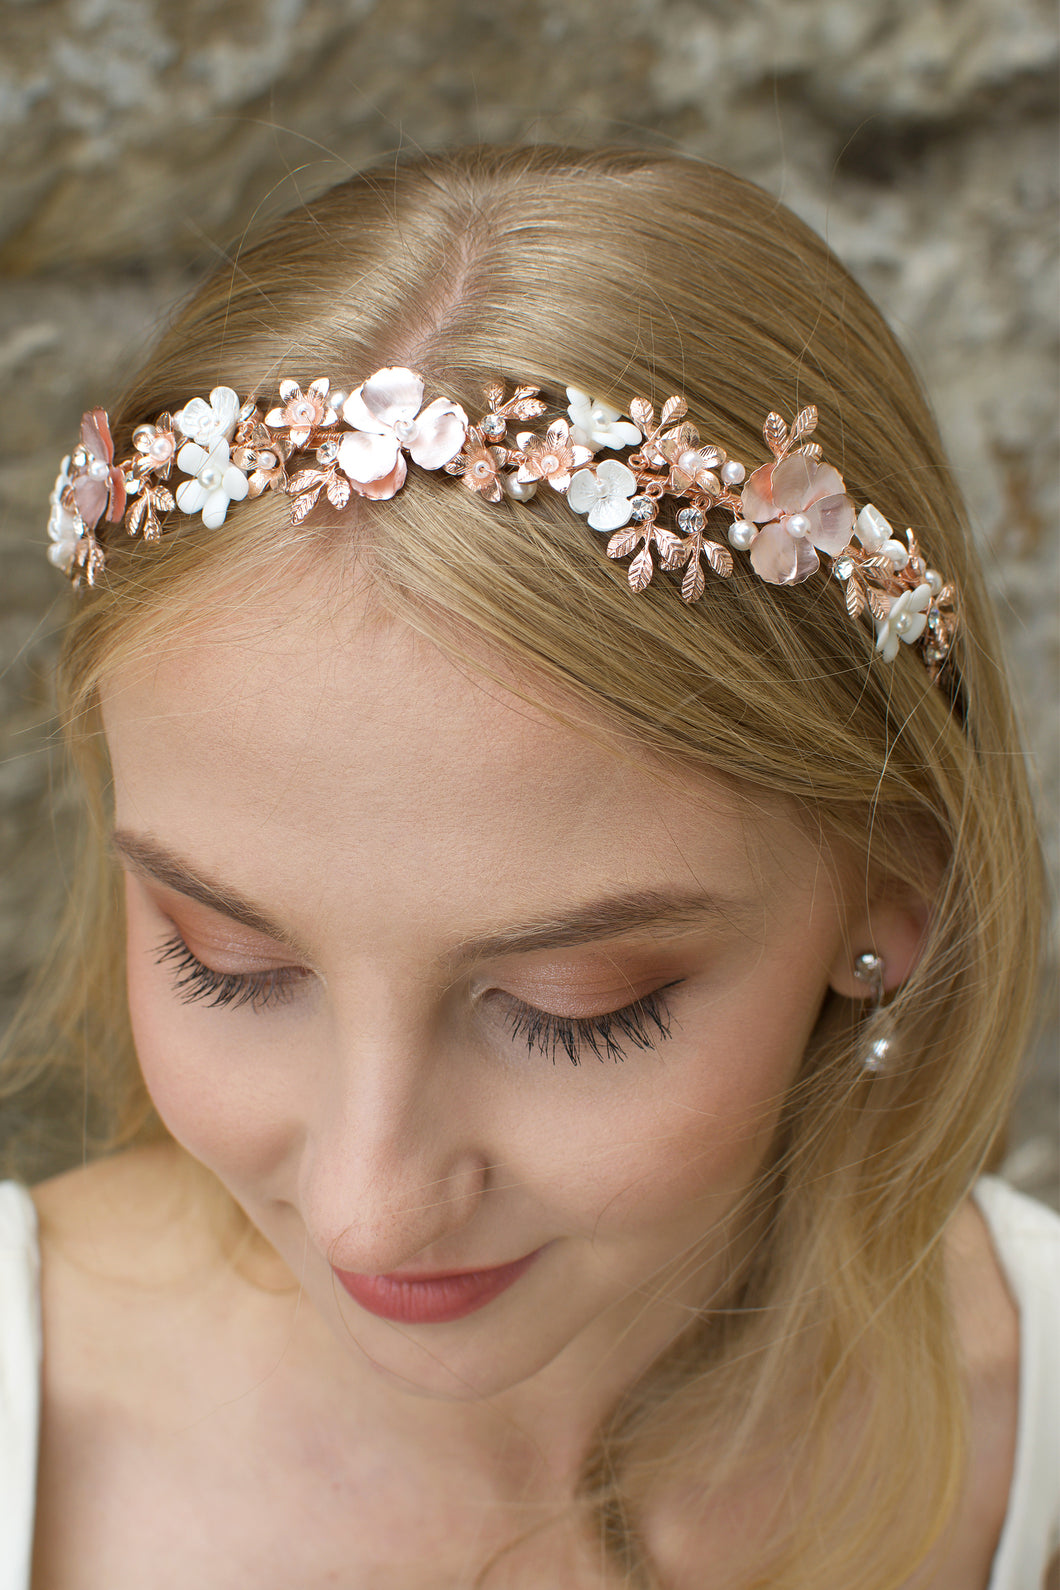 Blonde Bride wearing a pale rose gold headband with ceramic flowers